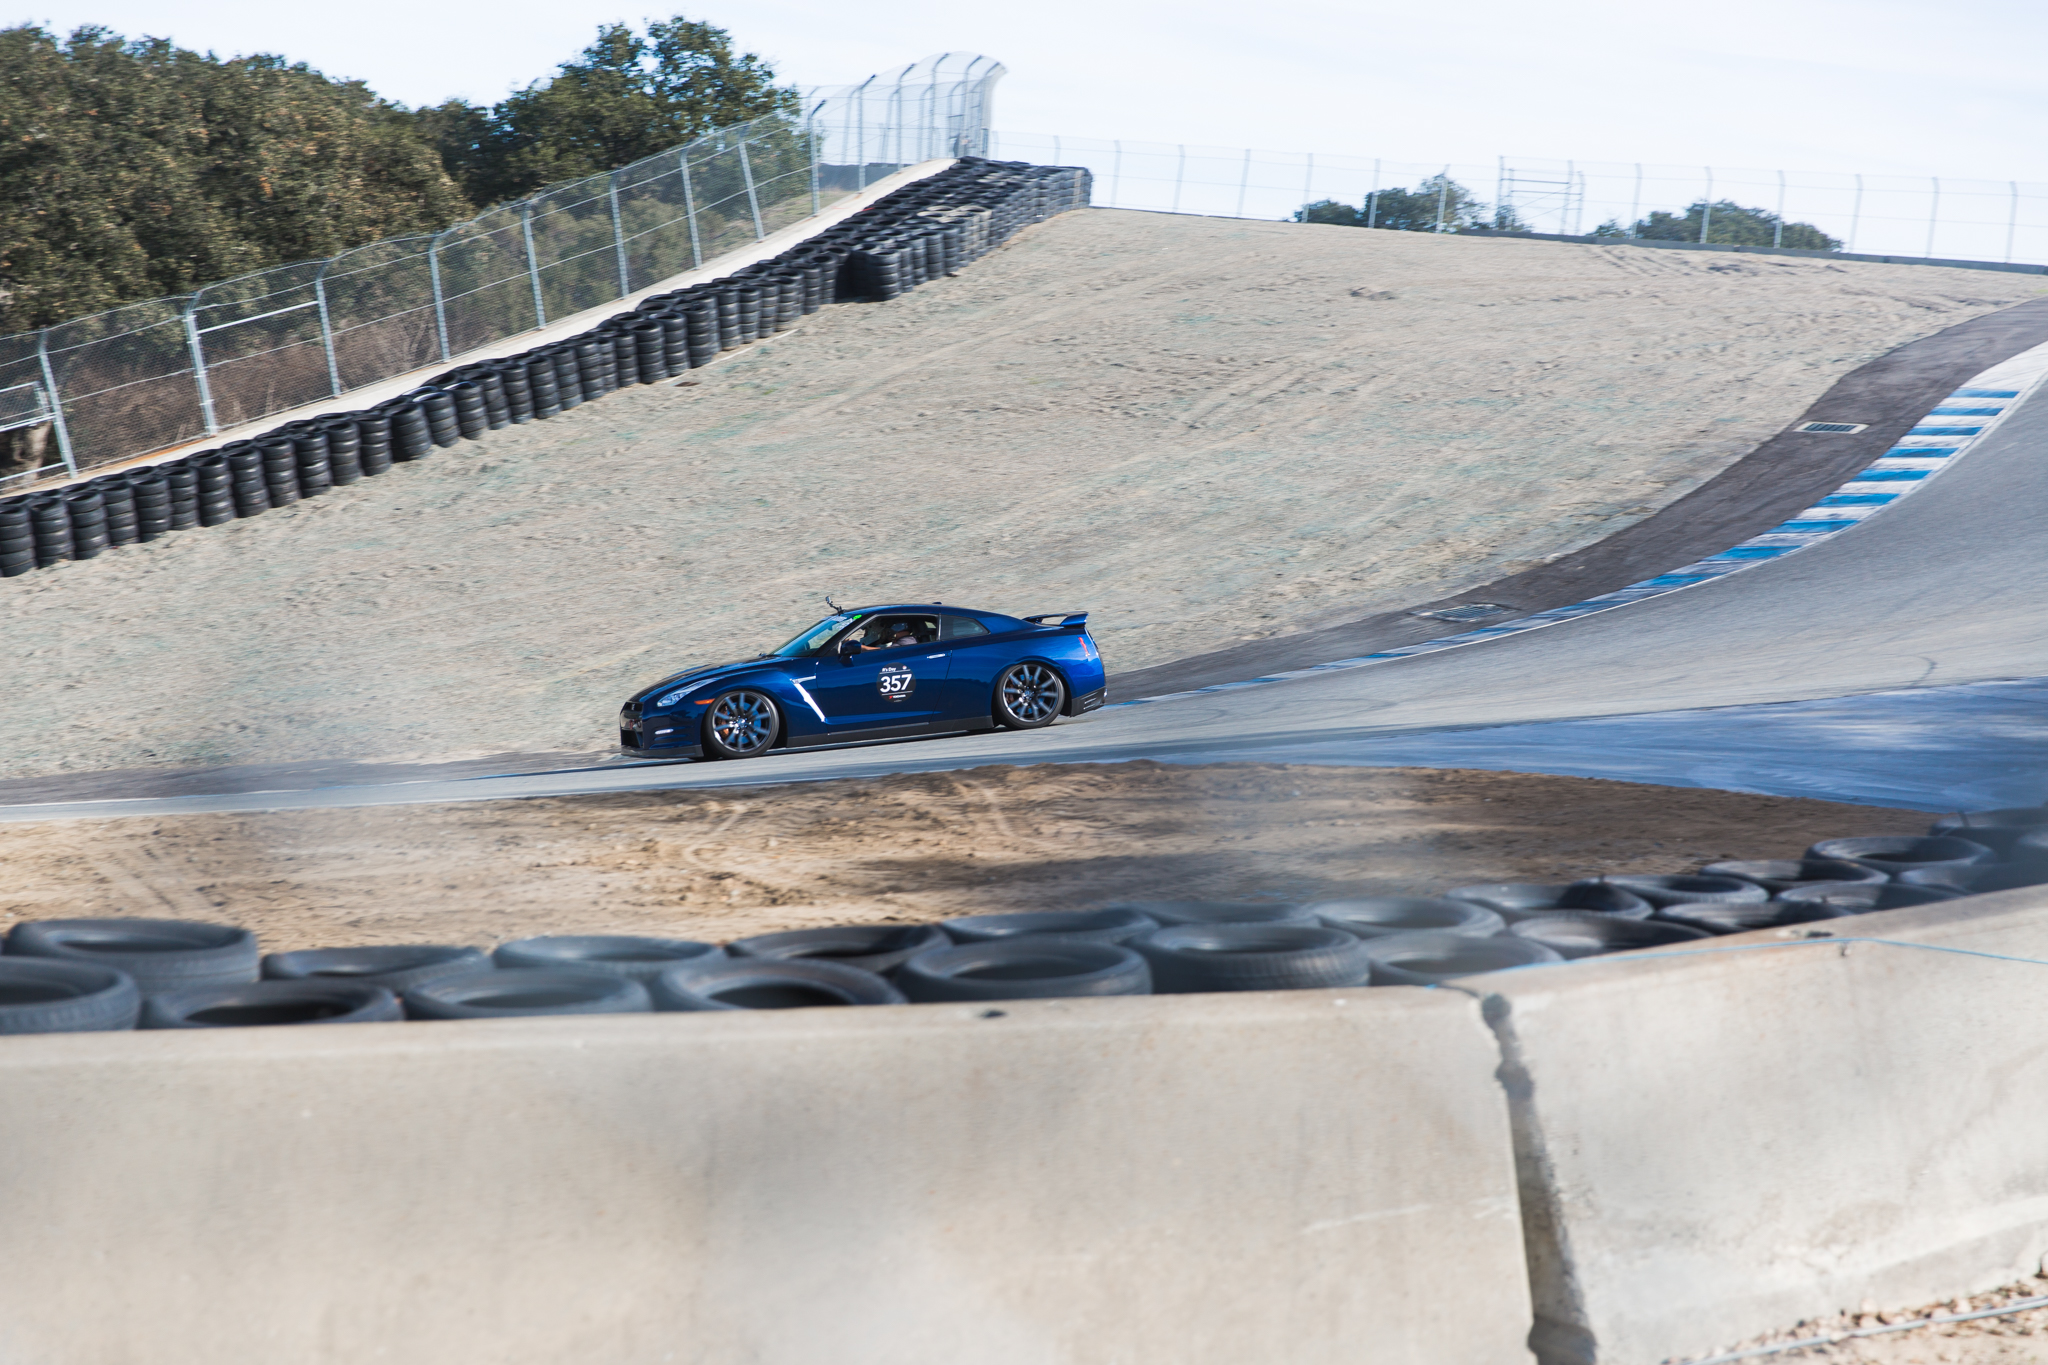 Stay_Driven_Rs_Day-47.jpg